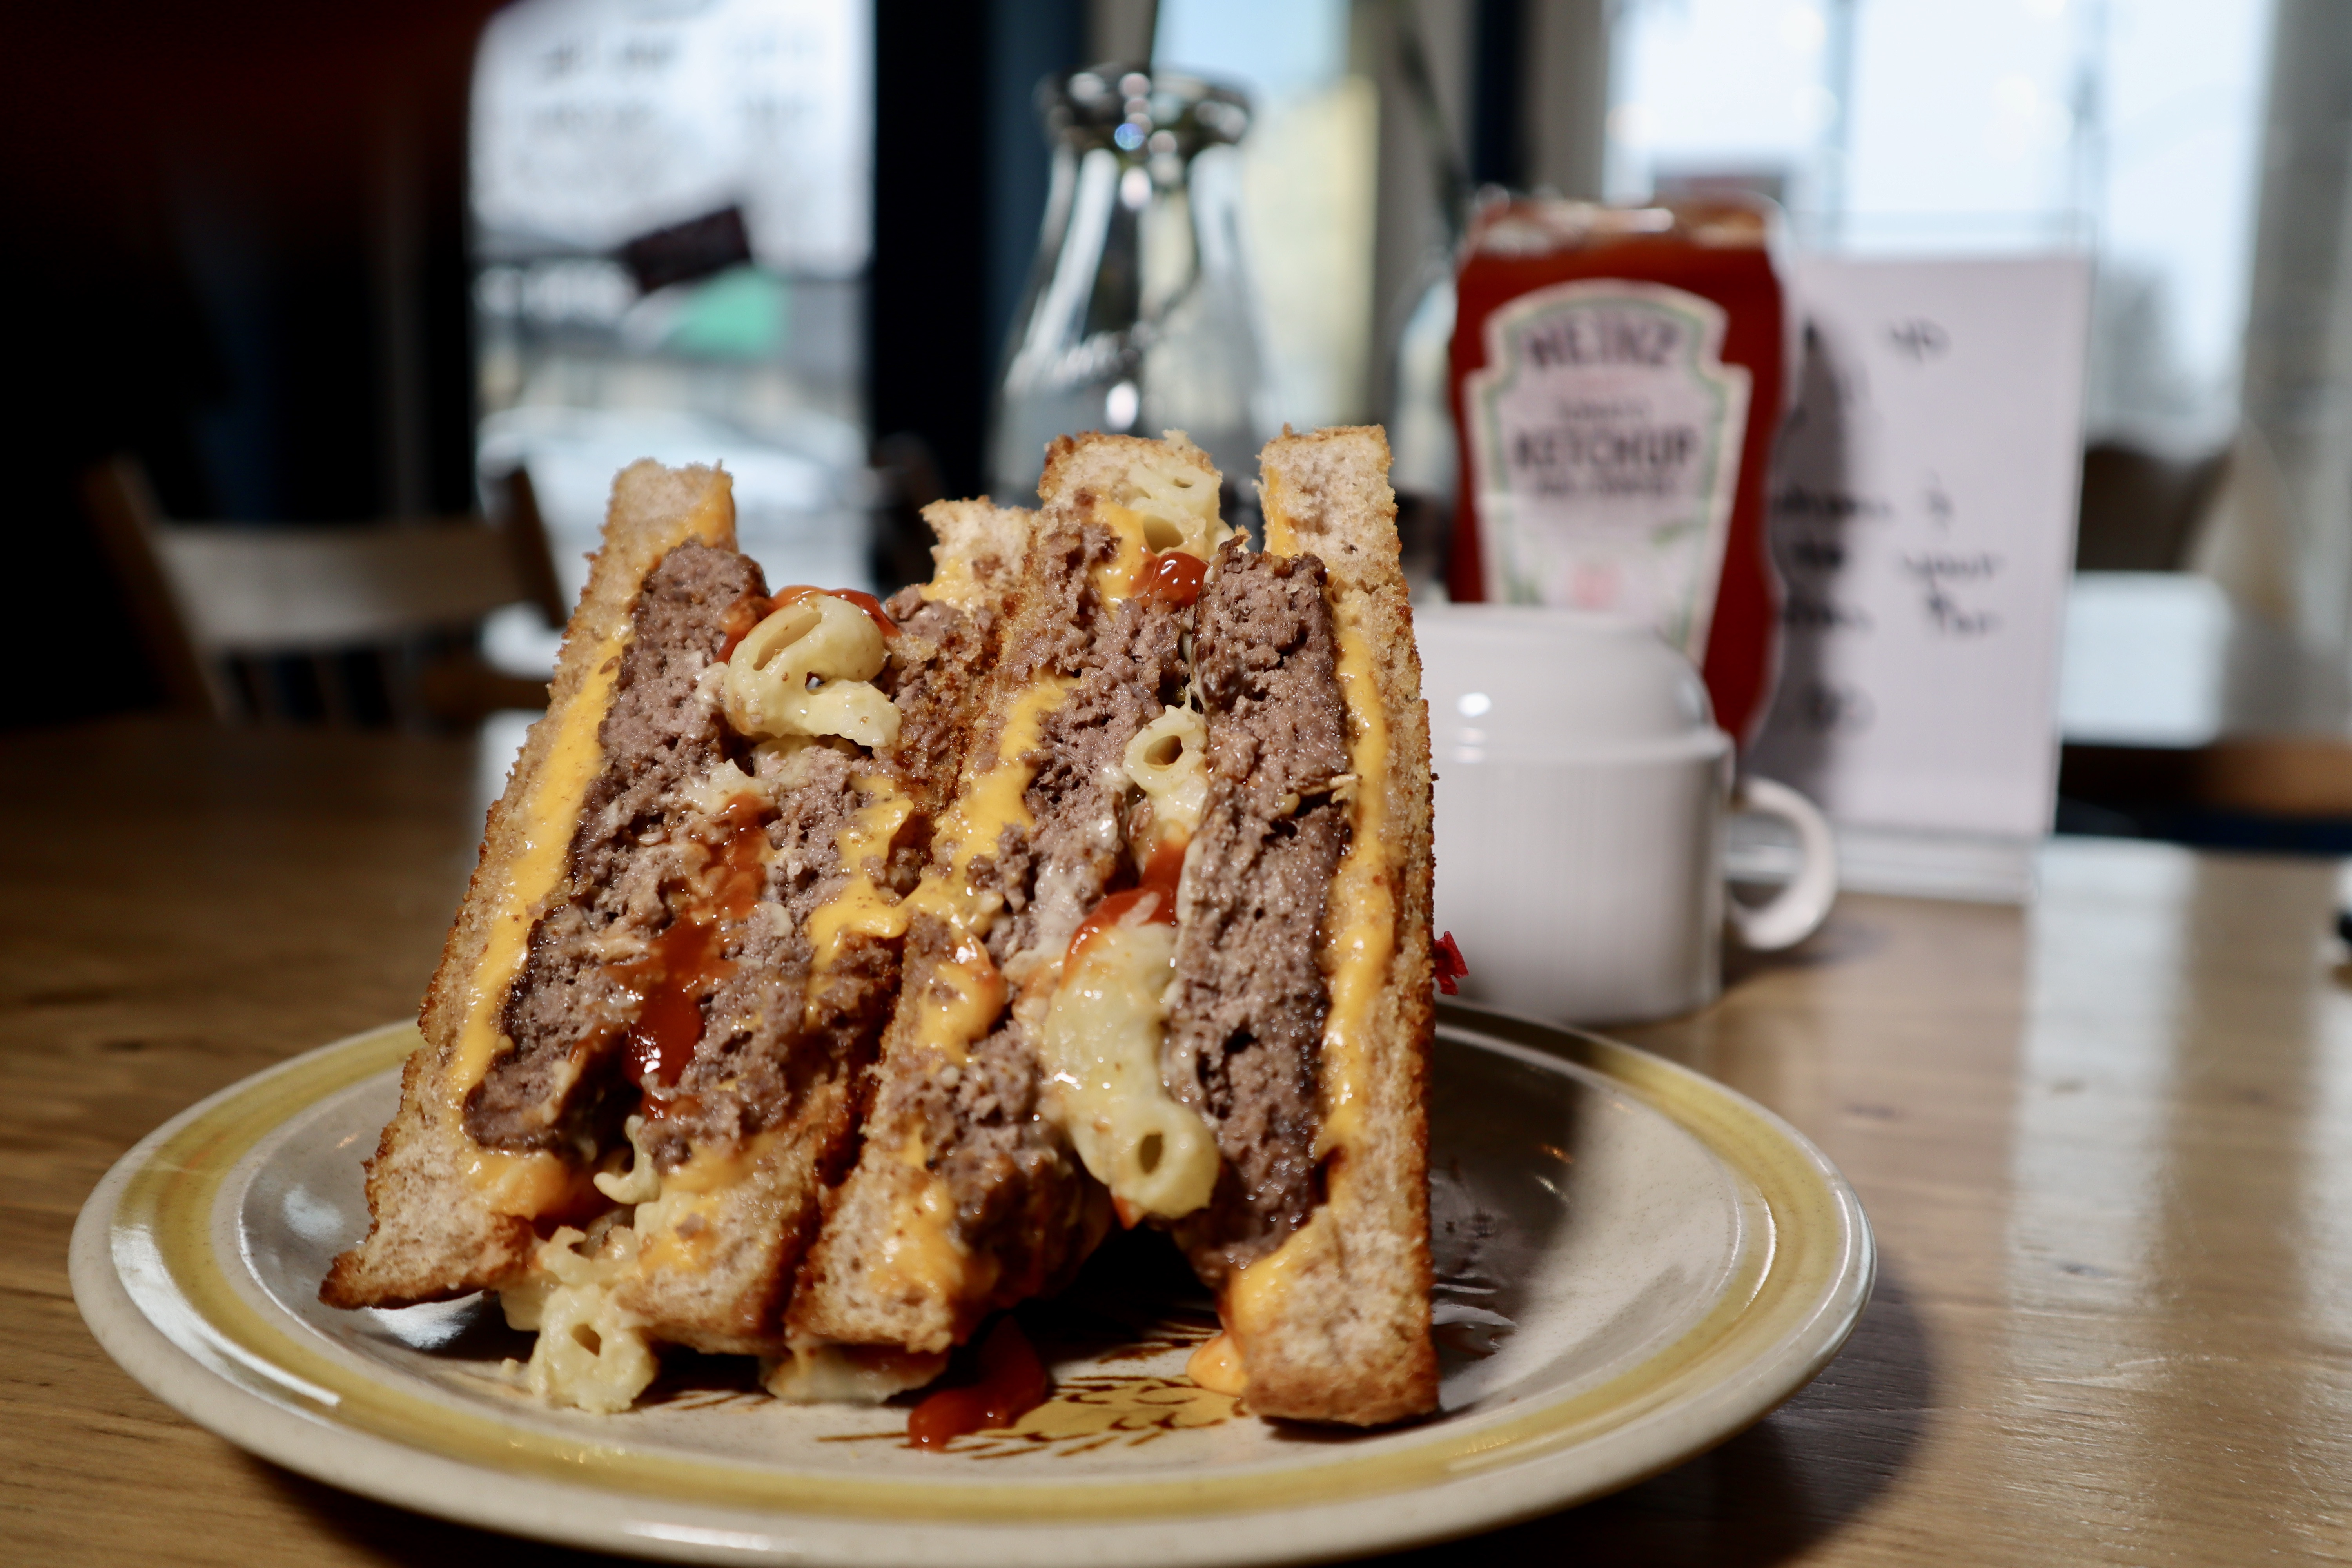 Brunch on Pitt, Taste Tour Grilled Cheese, Cornwall, Ontario